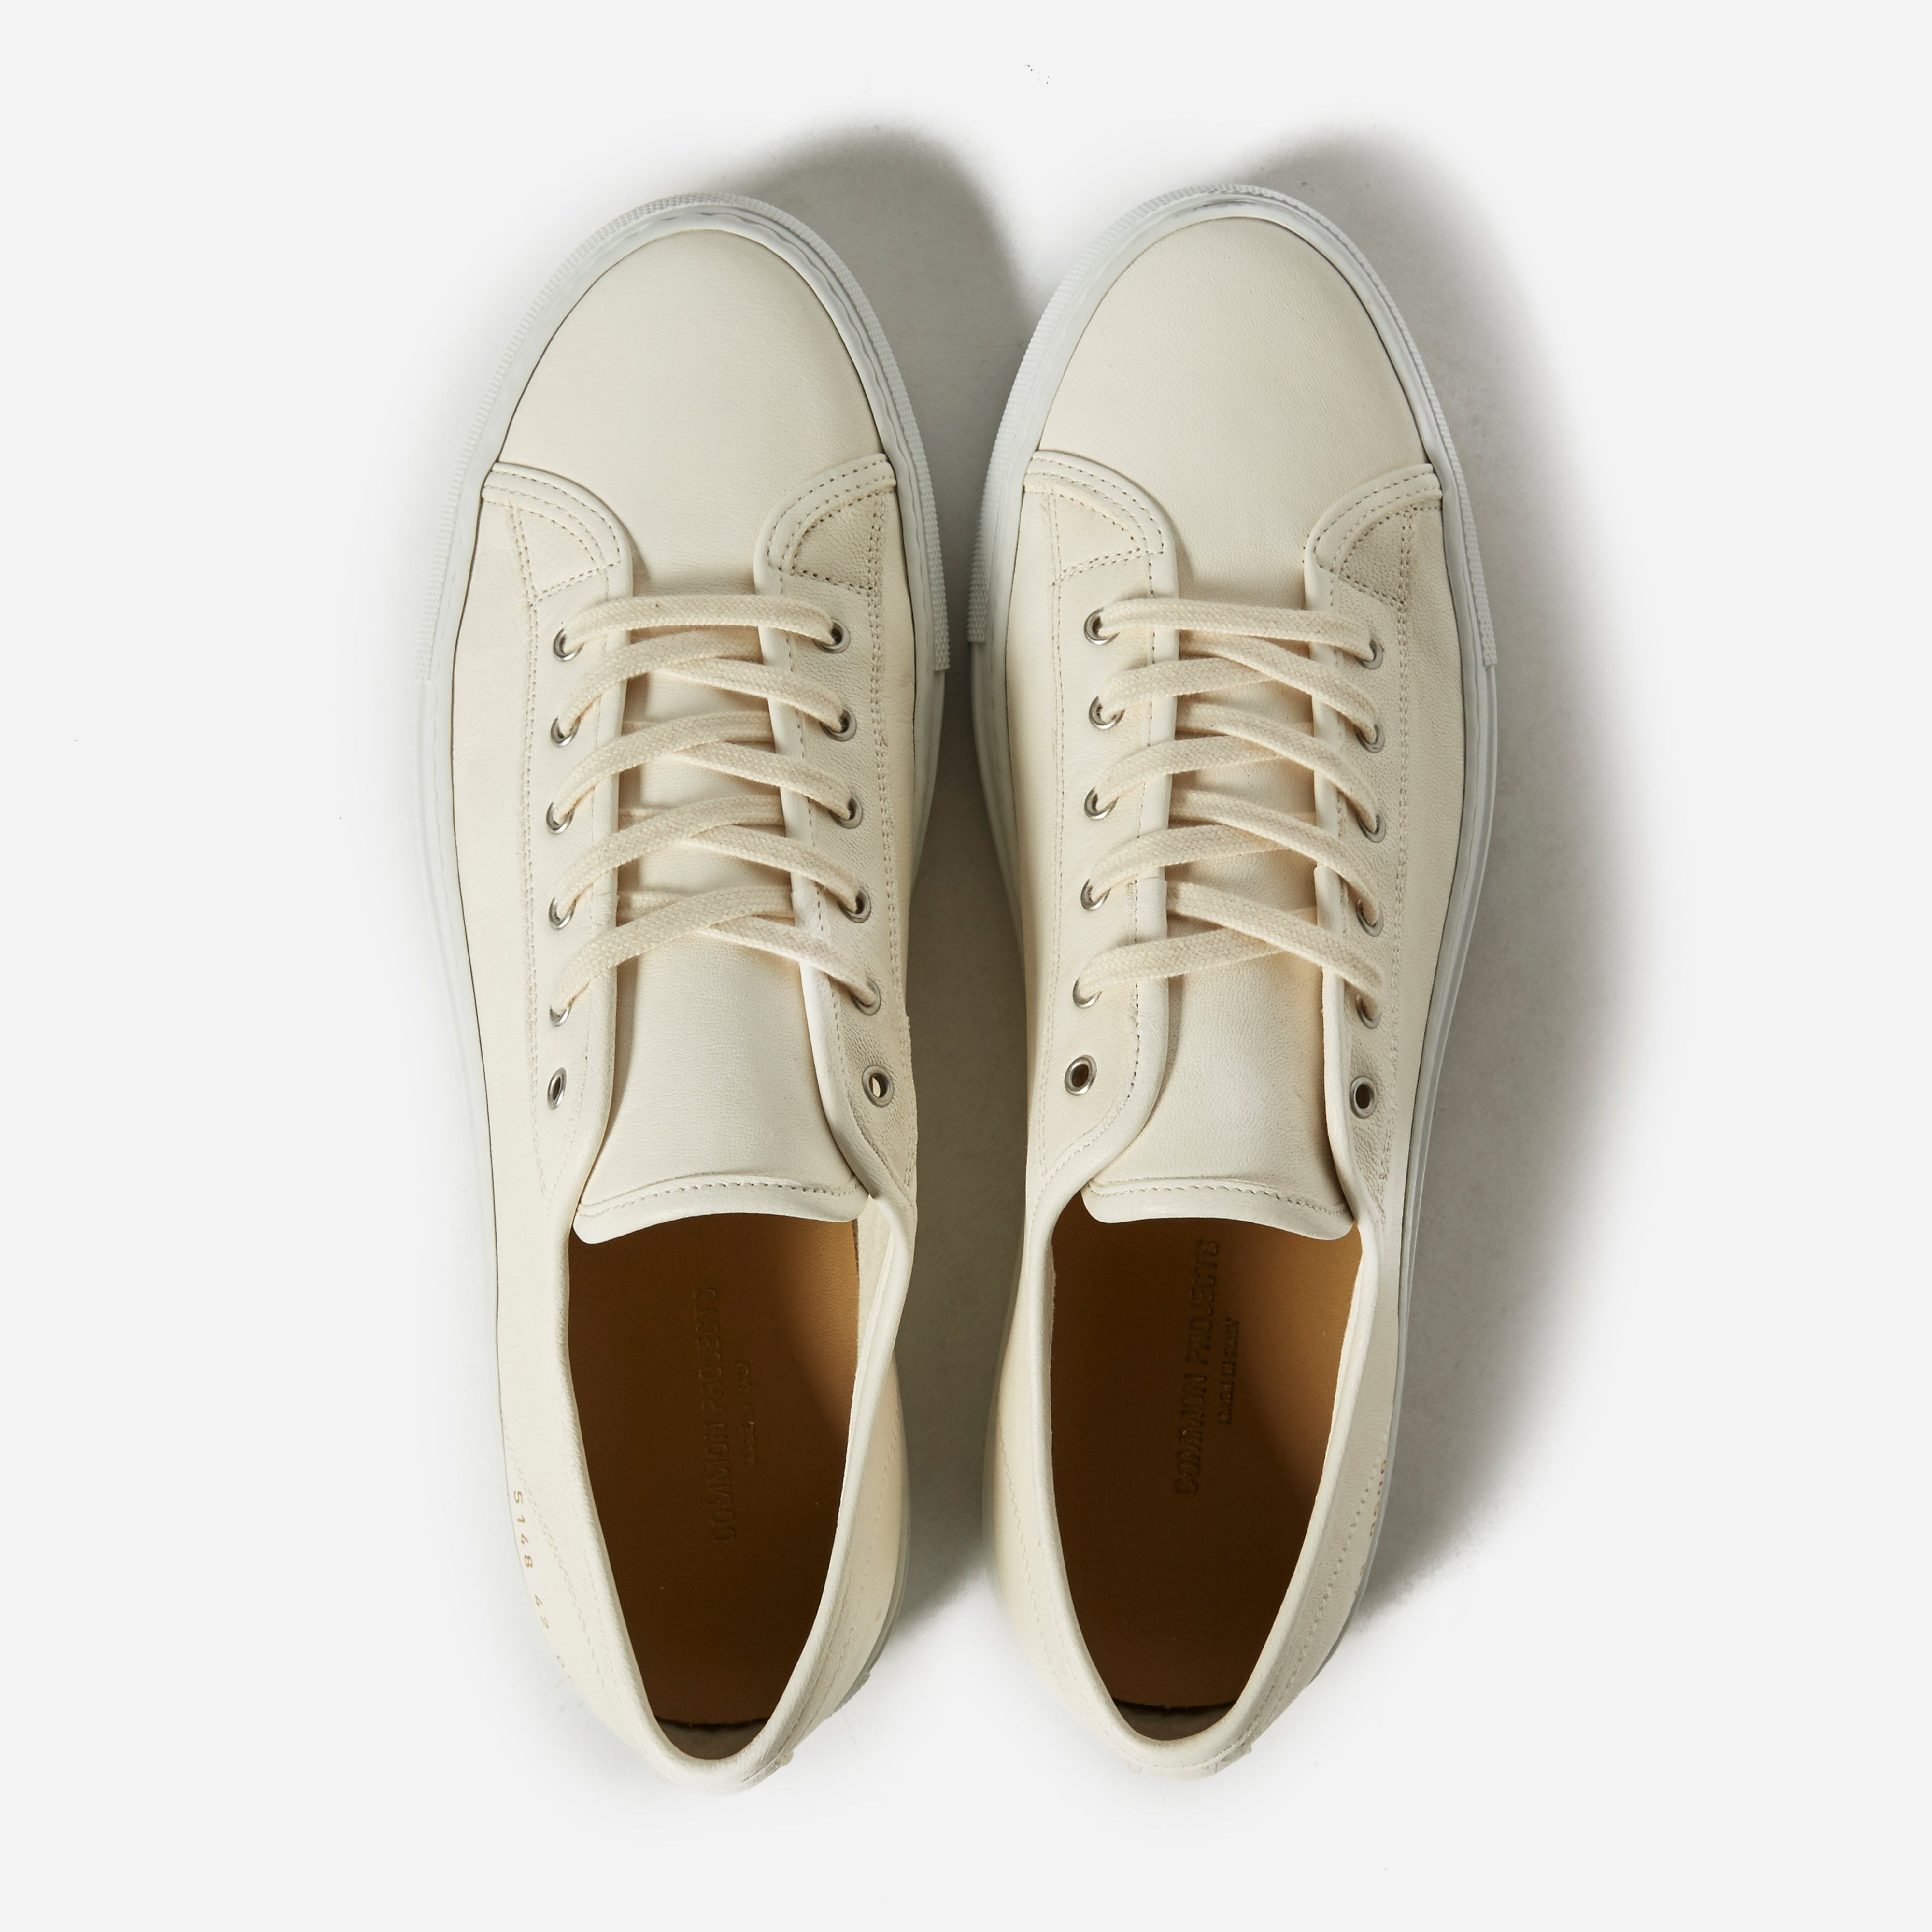 Common Projects Tournament Low Leather